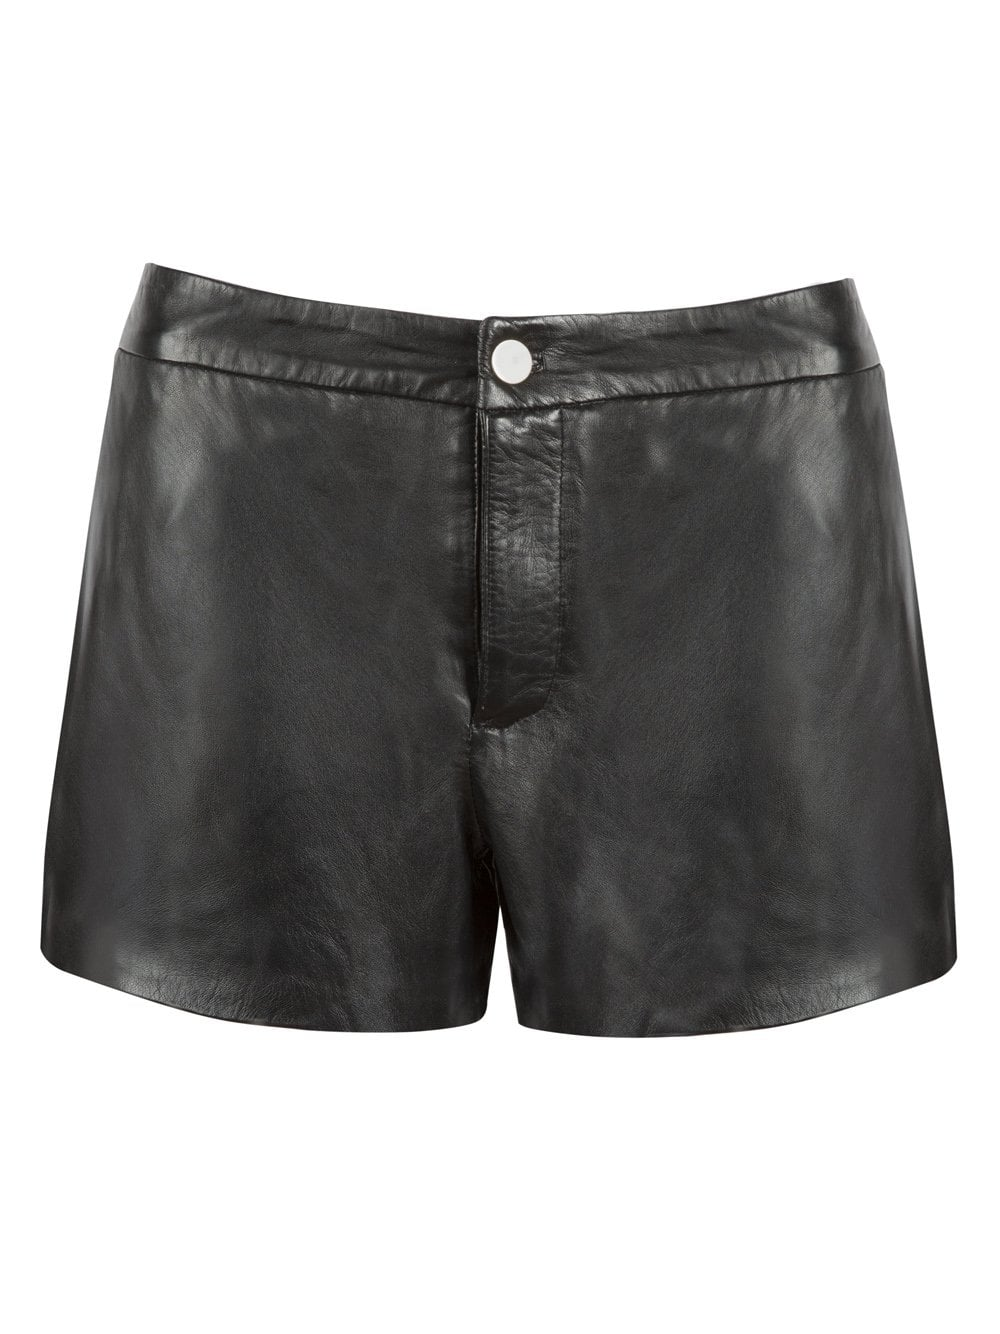 Ideas to wear leather shorts Outfits